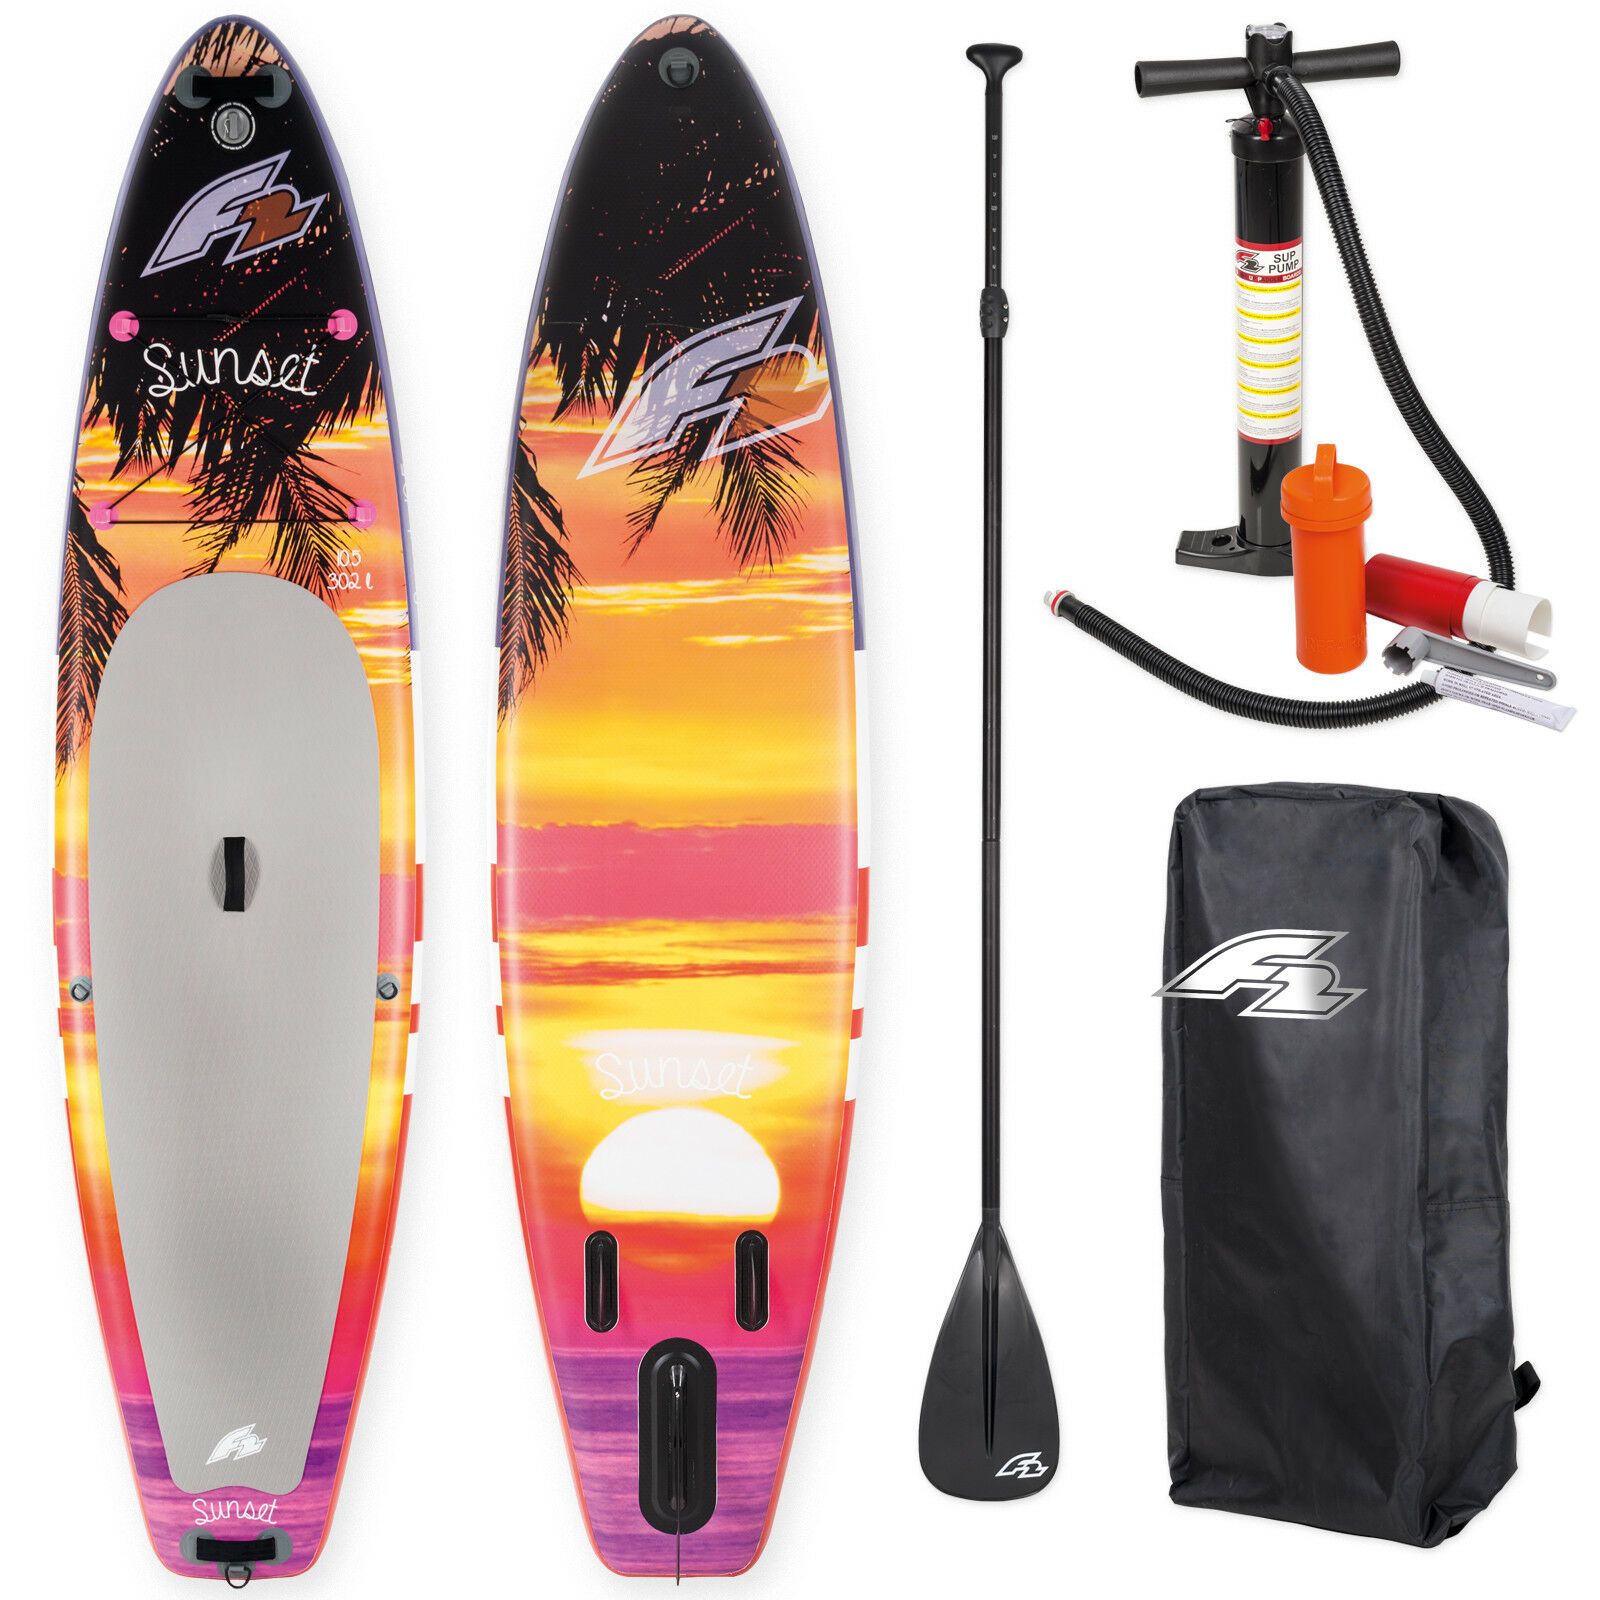 F2 sup Sunset rojo 10,5  2019 stand up paddle board hinchable + remo Bag bomba